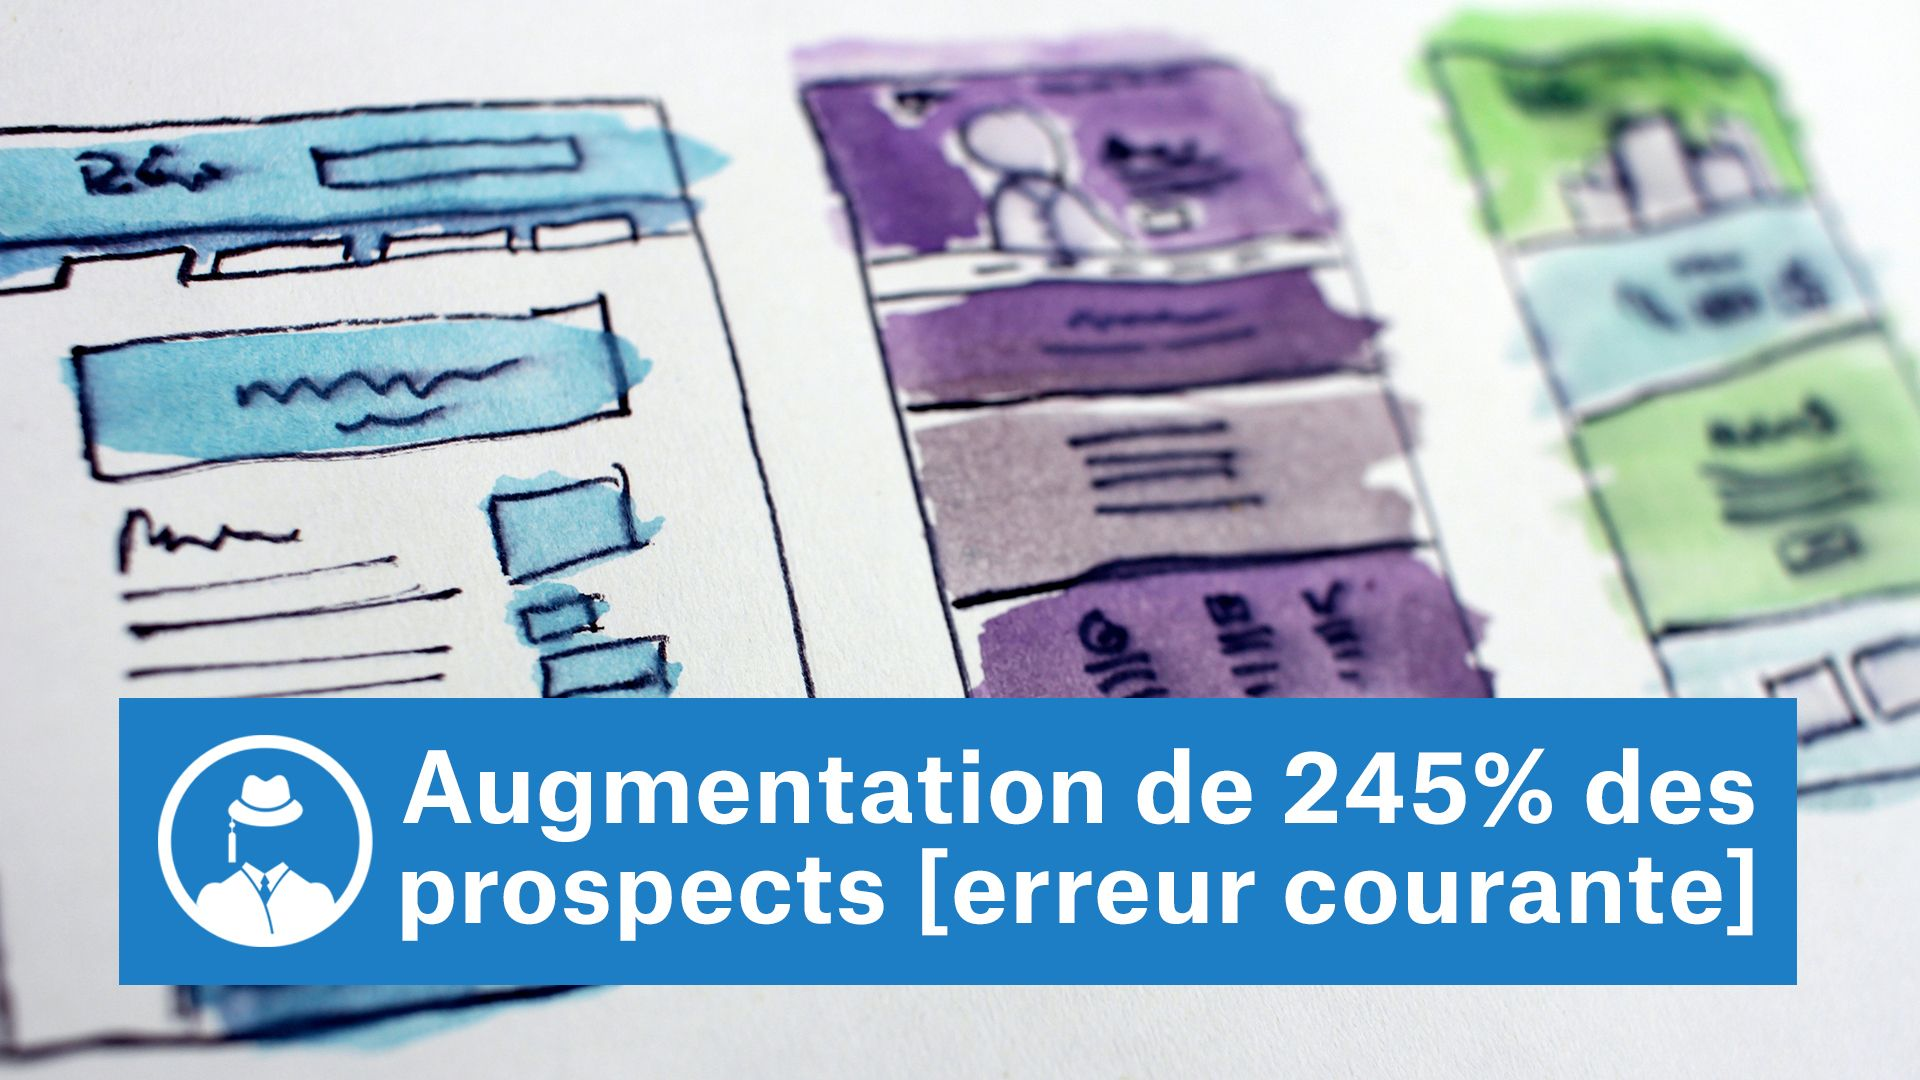 Augmentation de 245% des prospects [erreur courante] #GrowthHacking #WebMarketing #FormationGrowthHacking #CentreDeFormationFrance #TunnelAARRR #AARRR #SocialMedia #CommunityManagement #SEO #MarketingDigital #SiteWeb